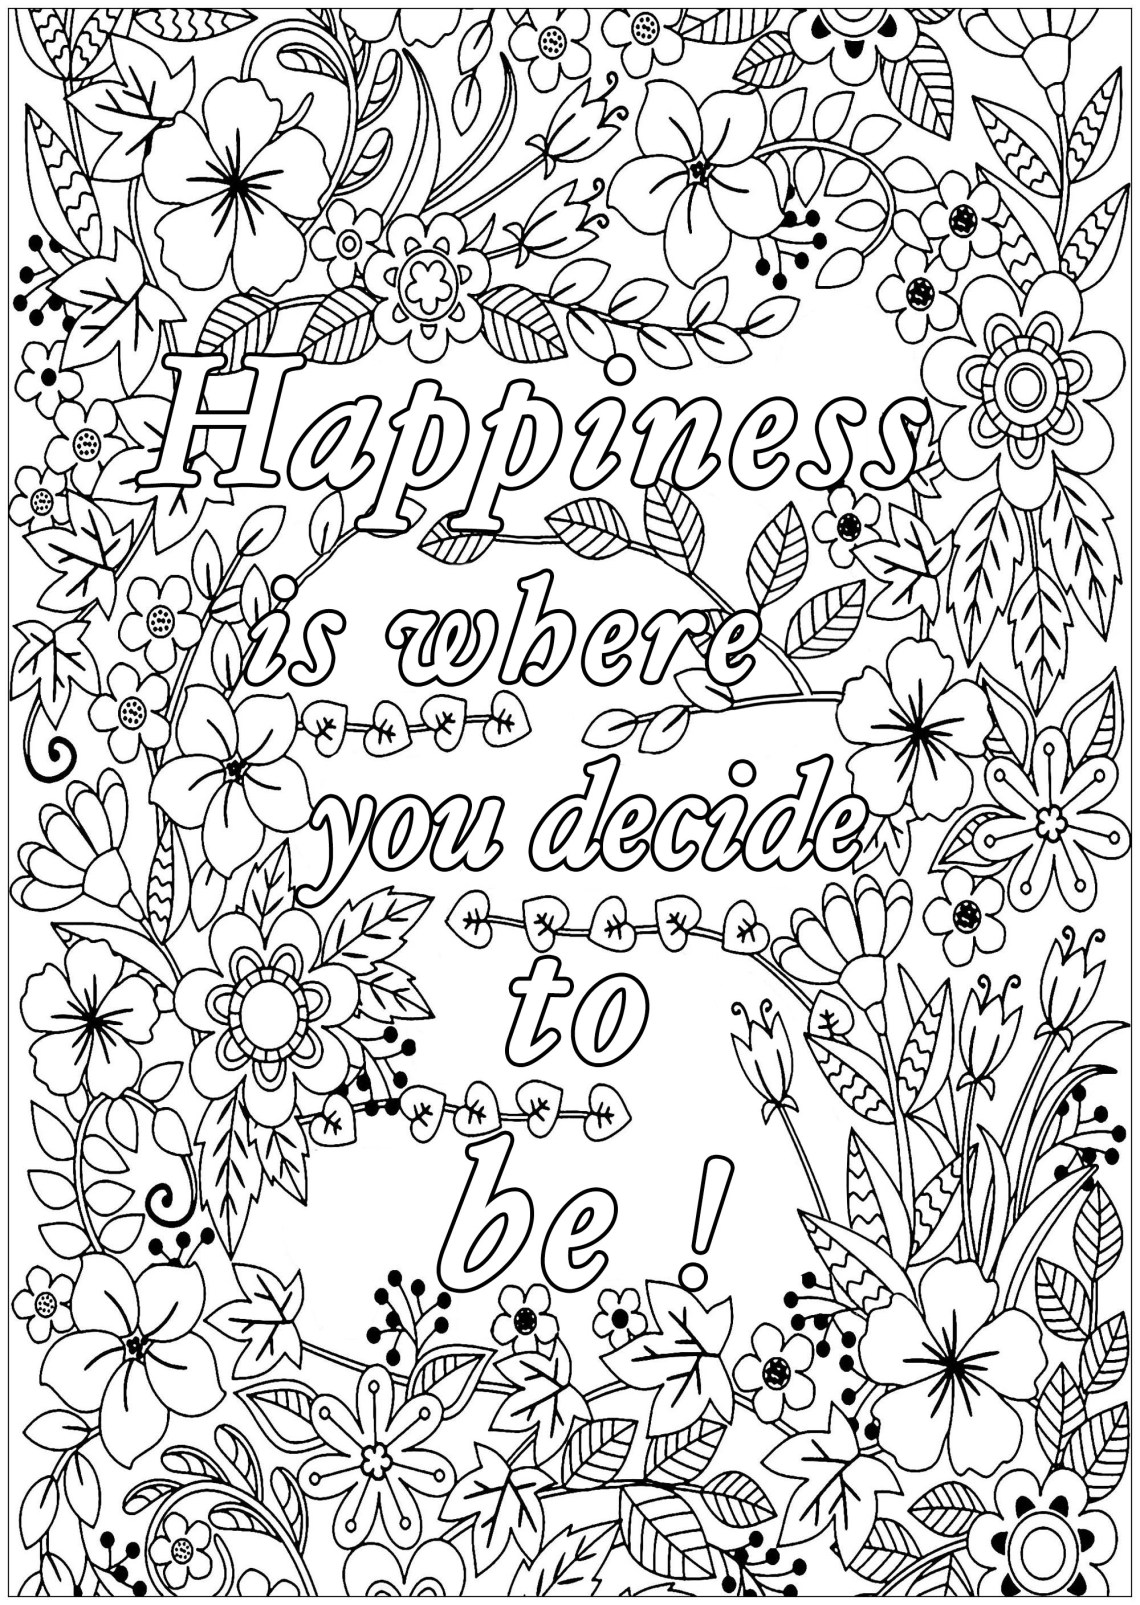 Happiness is where you decide to be - Positive & inspiring ... | printable coloring sheets with quotes